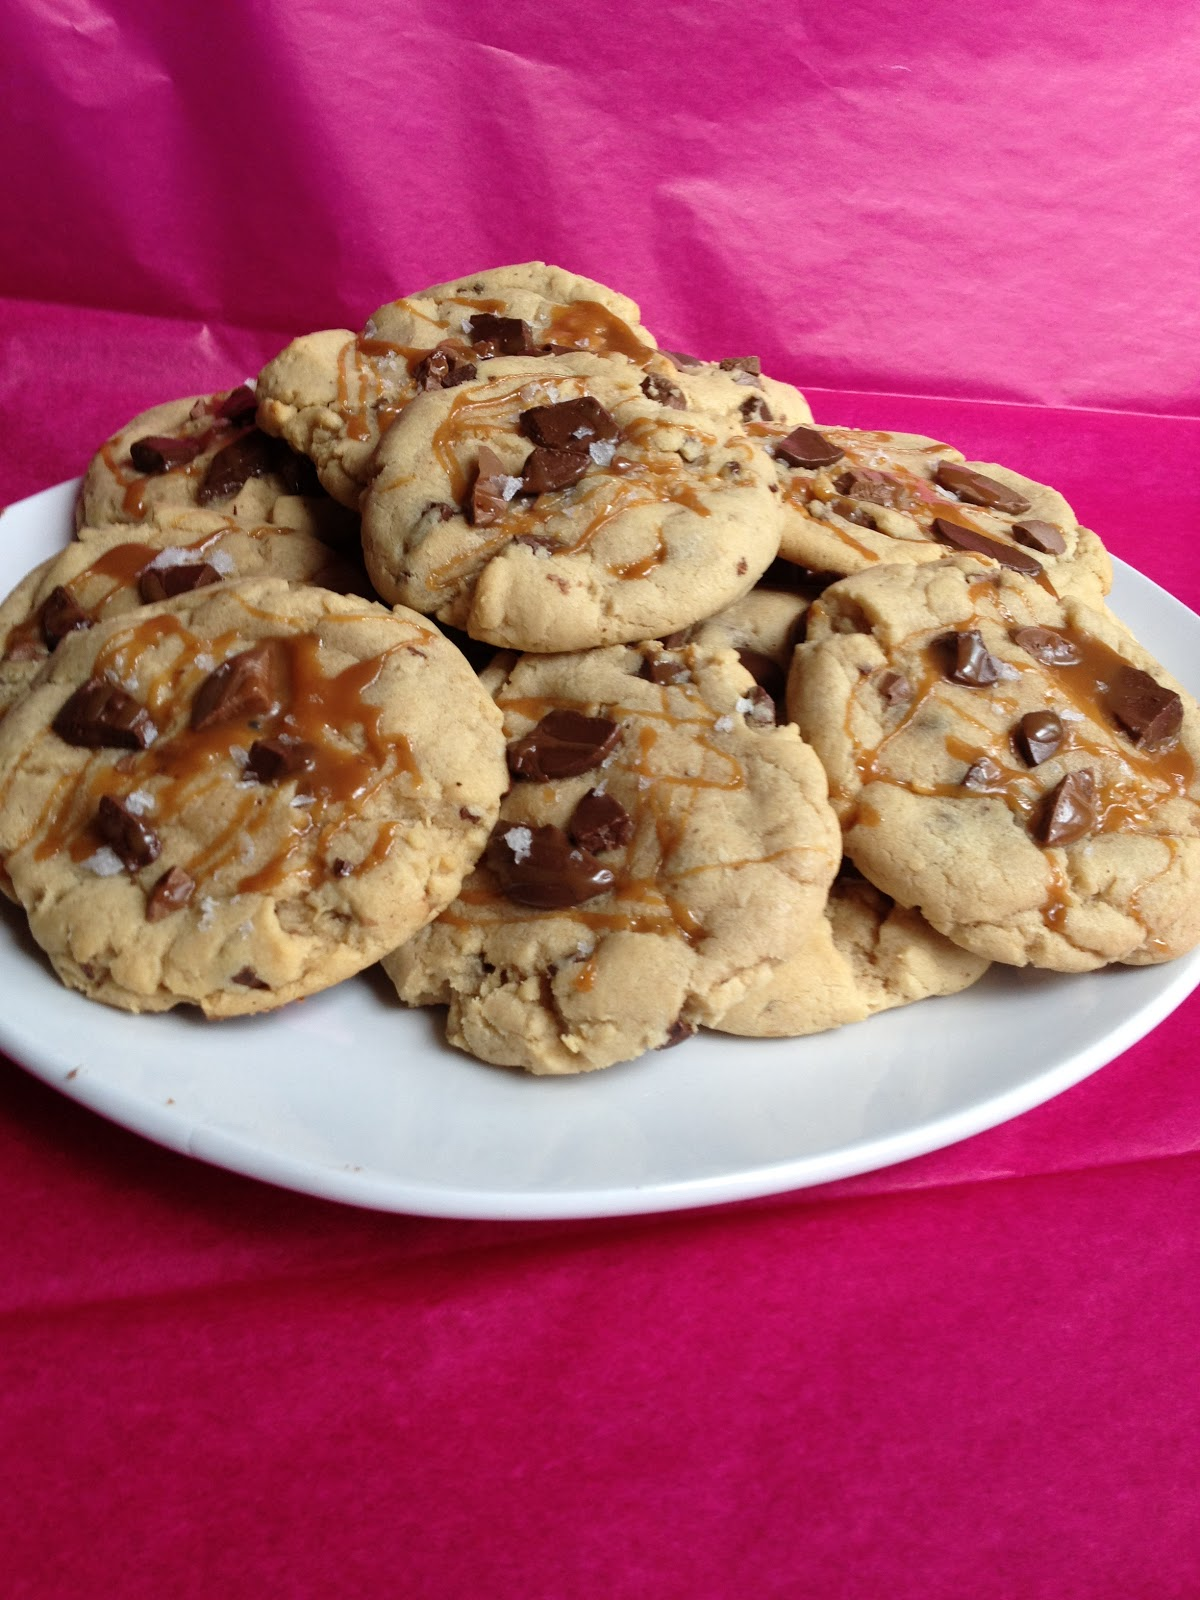 Diane Can Cook: Salted Caramel Chocolate Chunk Cookies